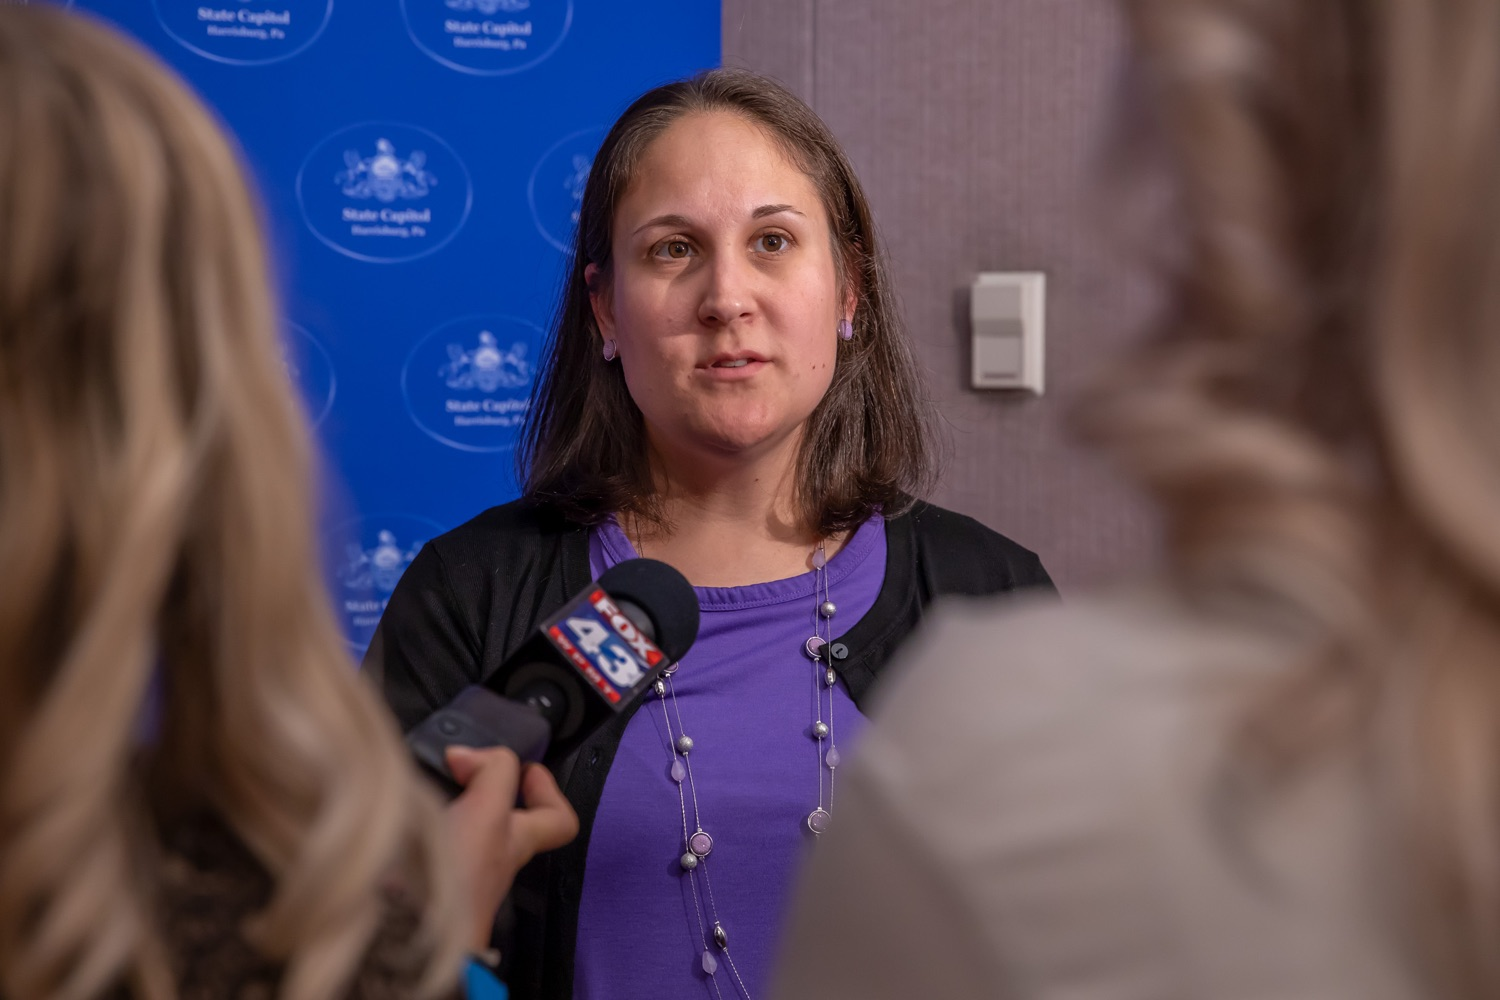 "<a href=""http://filesource.abacast.com/commonwealthofpa/photo/17415_DOH_RXGuidlines_AG_17.jpg"" target=""_blank"">⇣ Download Photo<br></a>Harrisburg, PA.  Jen Smith, Secretary of Dept. of Drug and Alcohold Programs, speaking to media outlets after Wednesday's press conference announcing the latest updated prescribing guideline, Treating Pain in Patients with OUD, as part of the second Stop Overdoses in PA: Get Help Now Week, a statewide initiative to get the overdose reversal medication naloxone to Pennsylvanians and get help for residents suffering from the disease of opioid use disorder (OUD).  September 18, 2019"